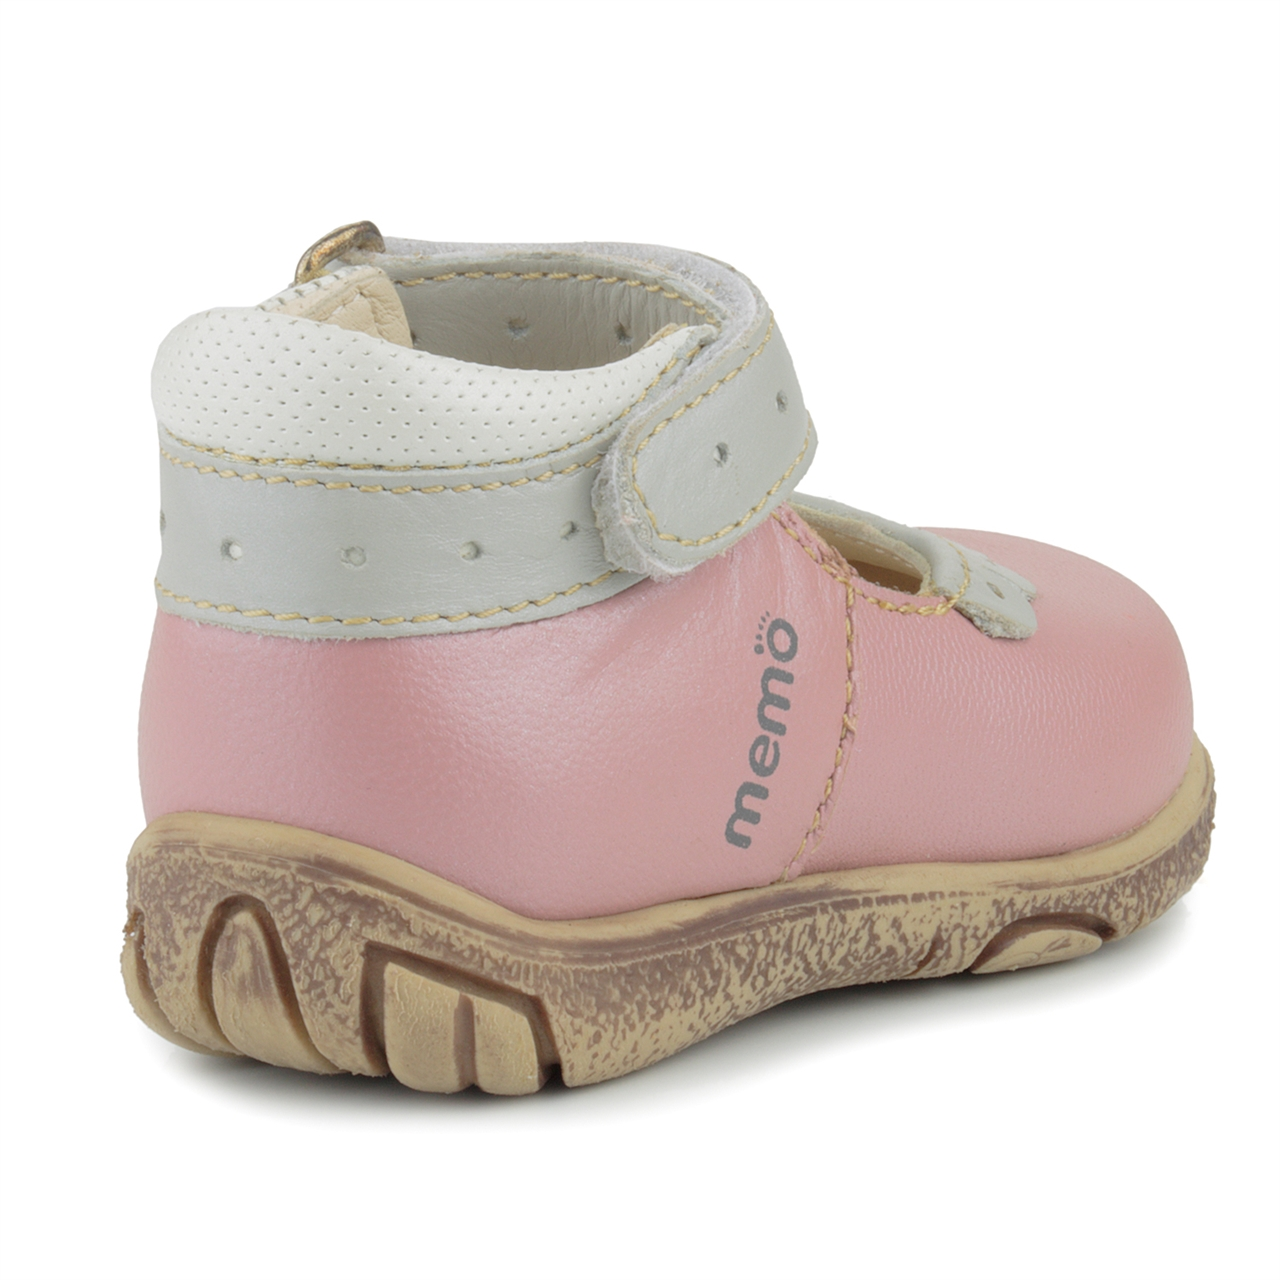 Memo Shoes. Memo Fiona 3JB Pink Infant & Toddler Girl ...Orthopedic Shoes For Kids